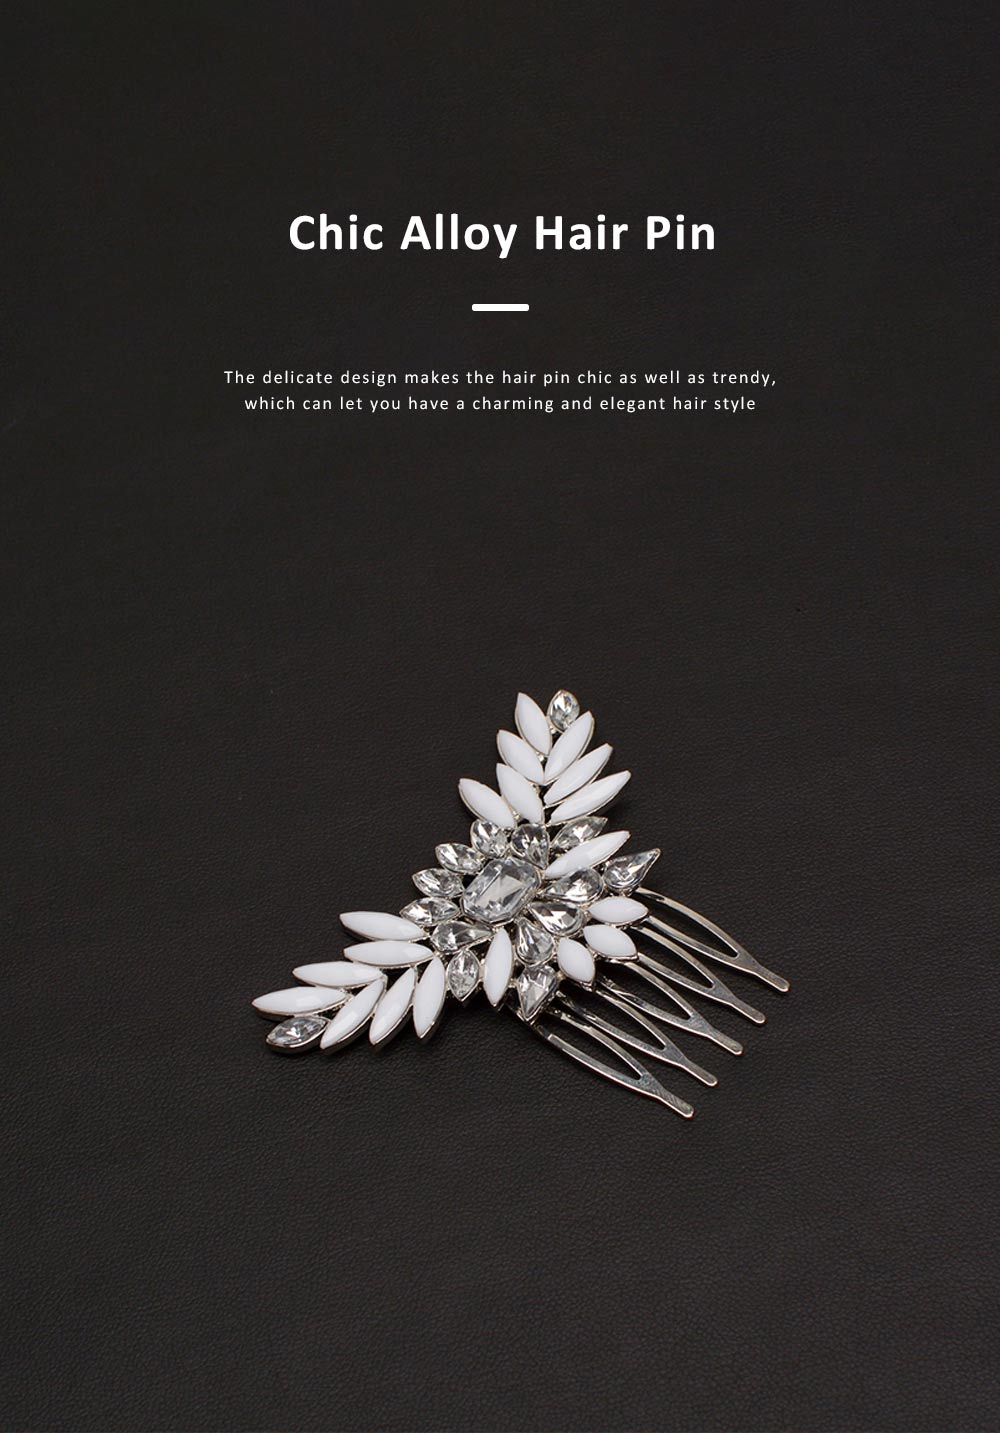 Chic Diamond Alloy Hair Clip Stylish Hair Pin for Women Girls Suitable for Different Hair Styles 4